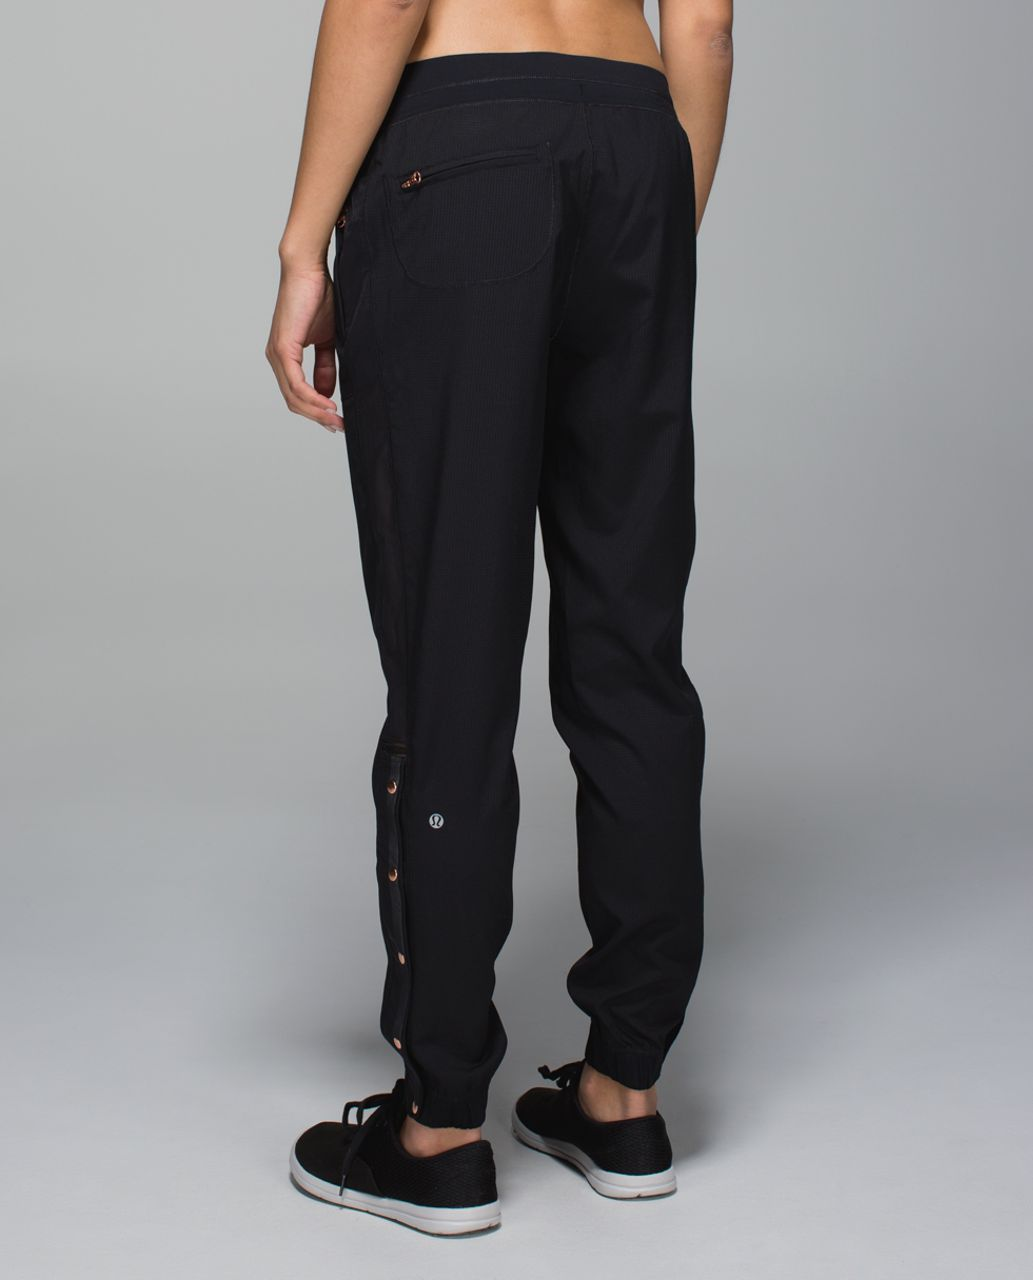 446305d2cc445 Lululemon Var-City Track Pant - Black in 2019